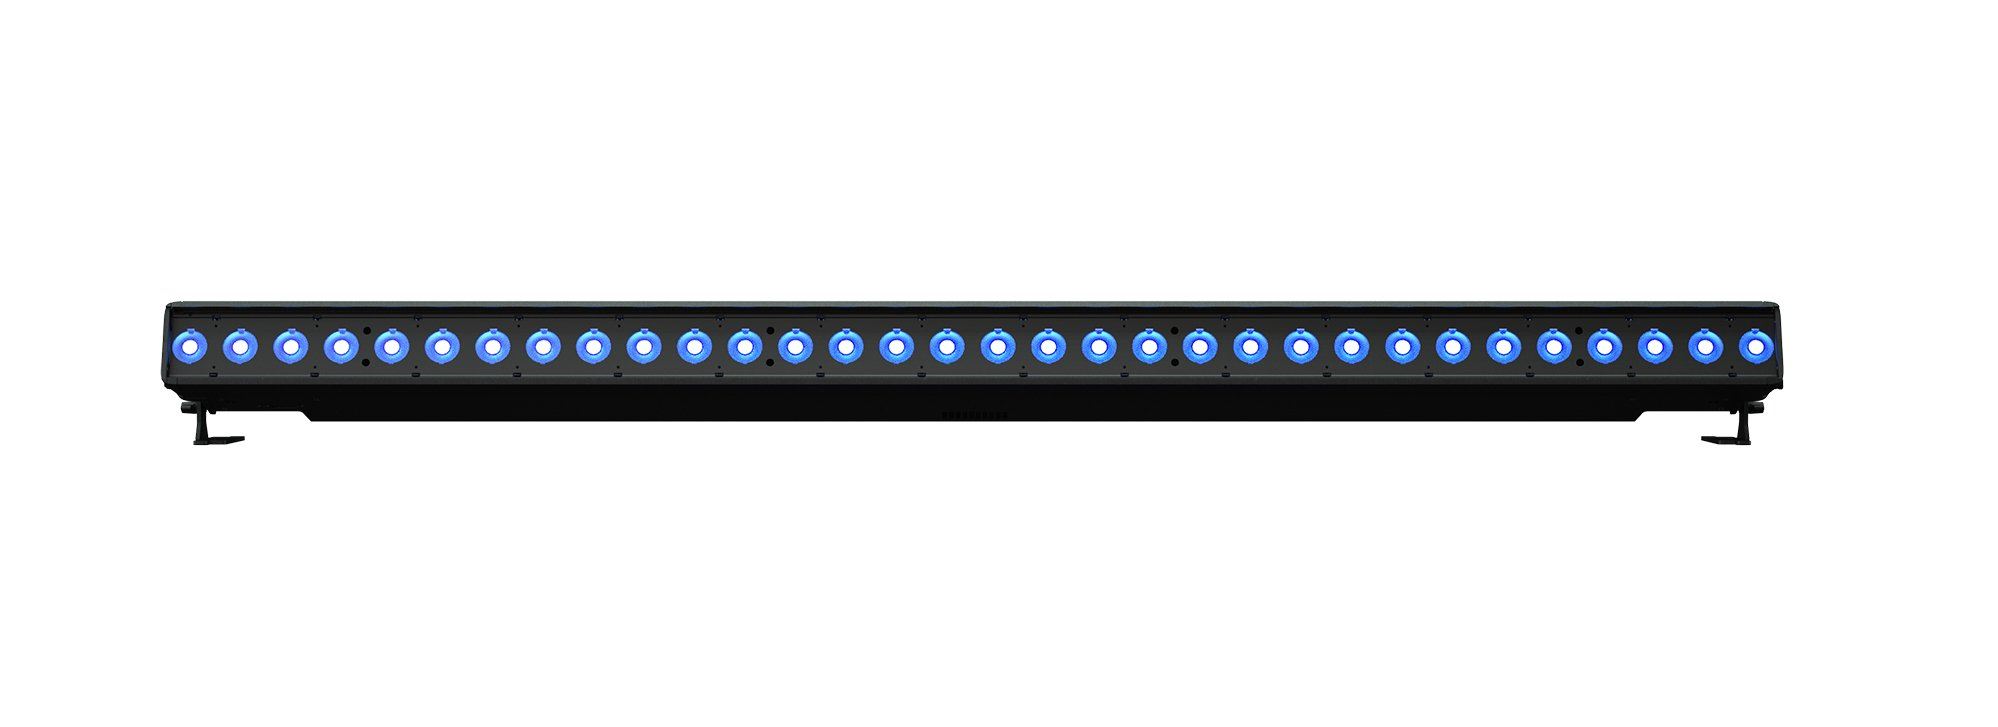 2 Meter RGB-L LED Batten Luminaire with Bare-End Power Lead